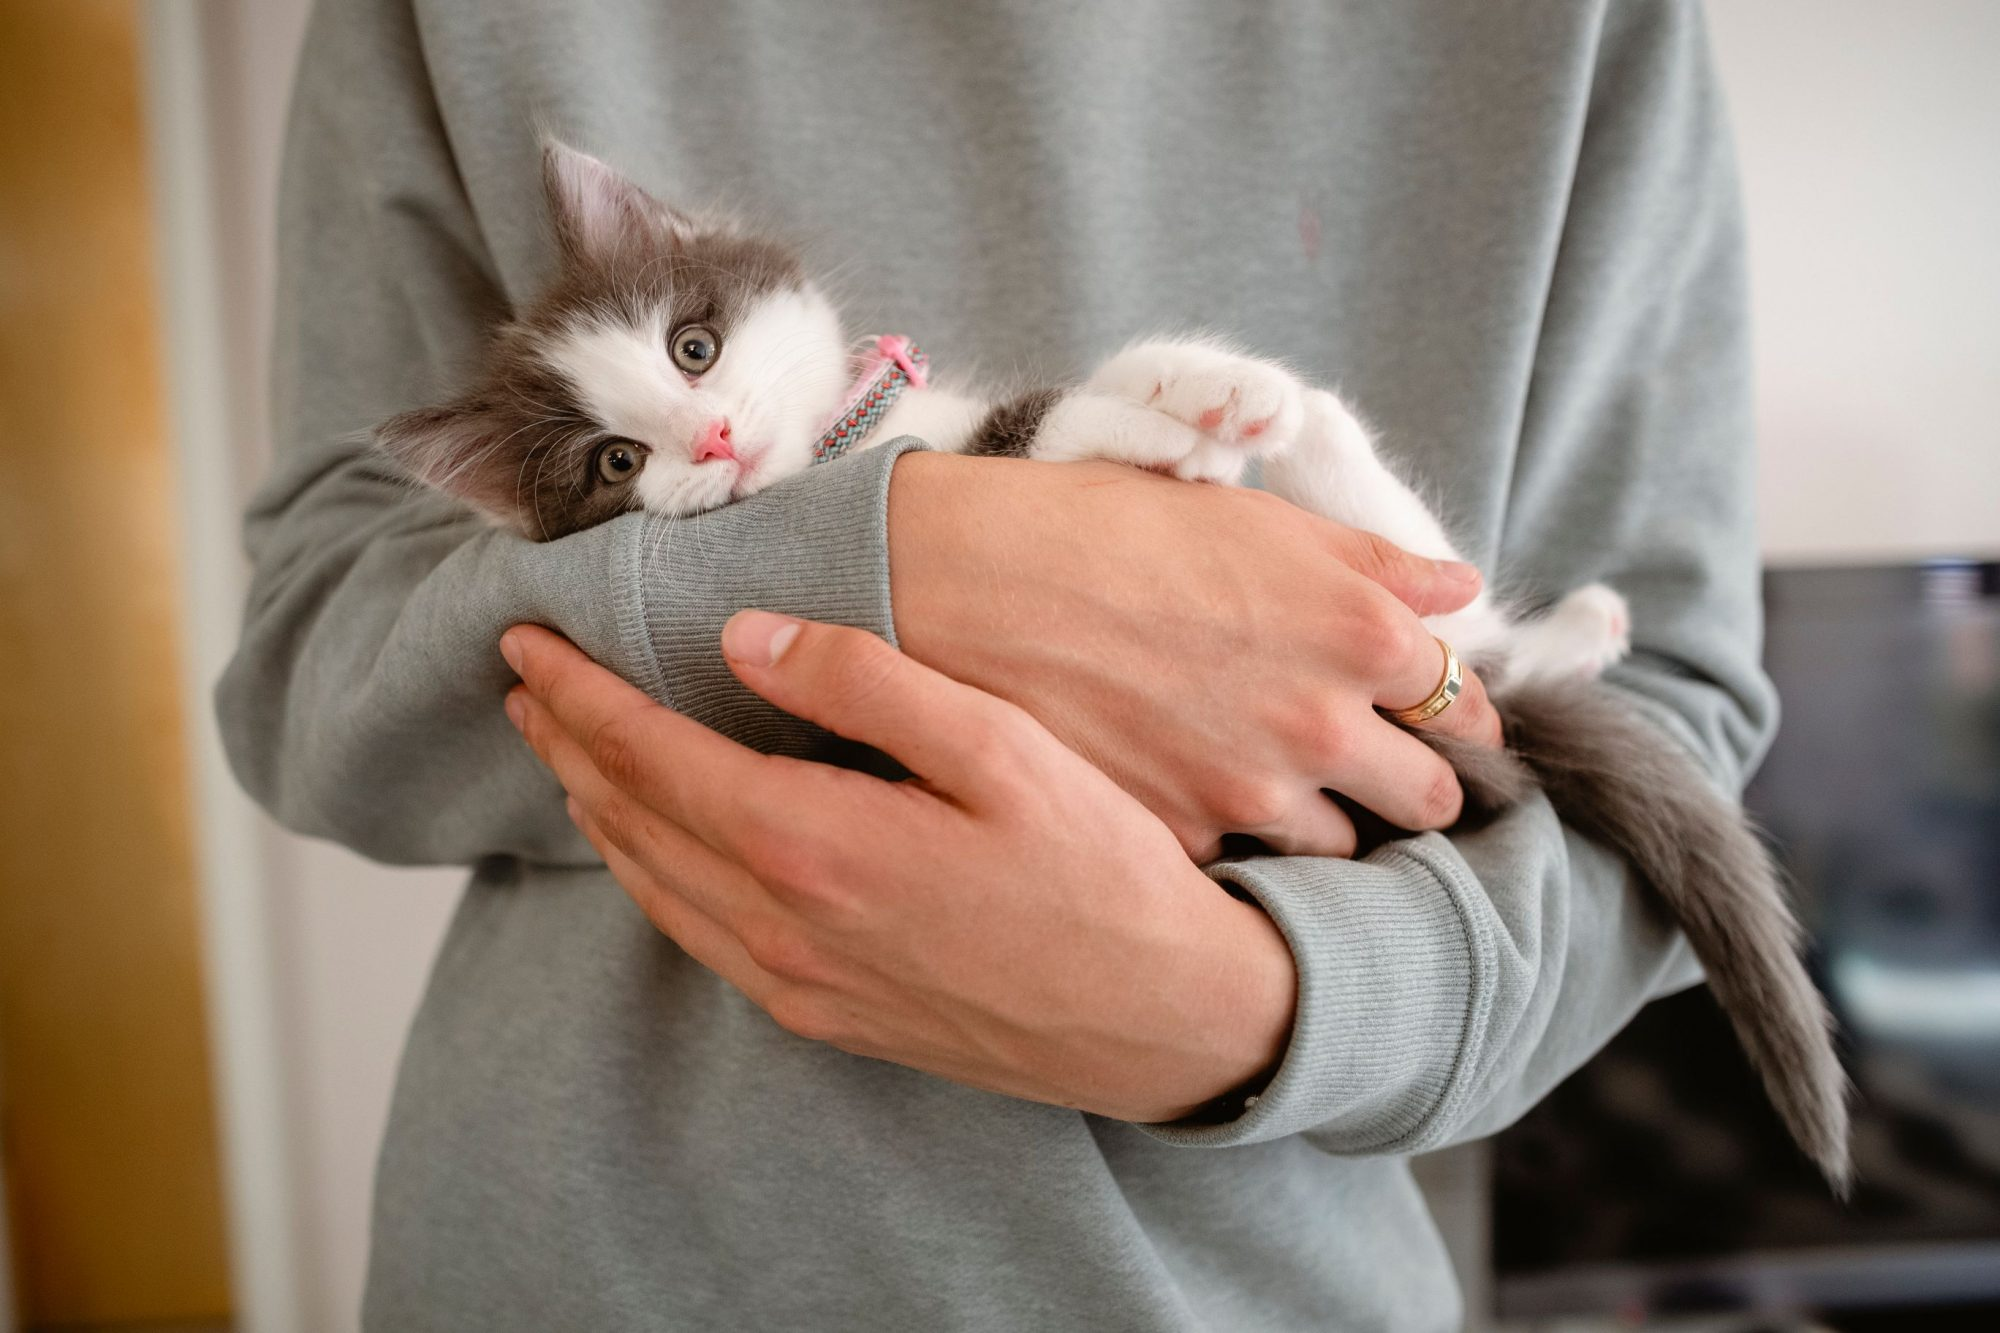 Kitten being cradled in owners arms.